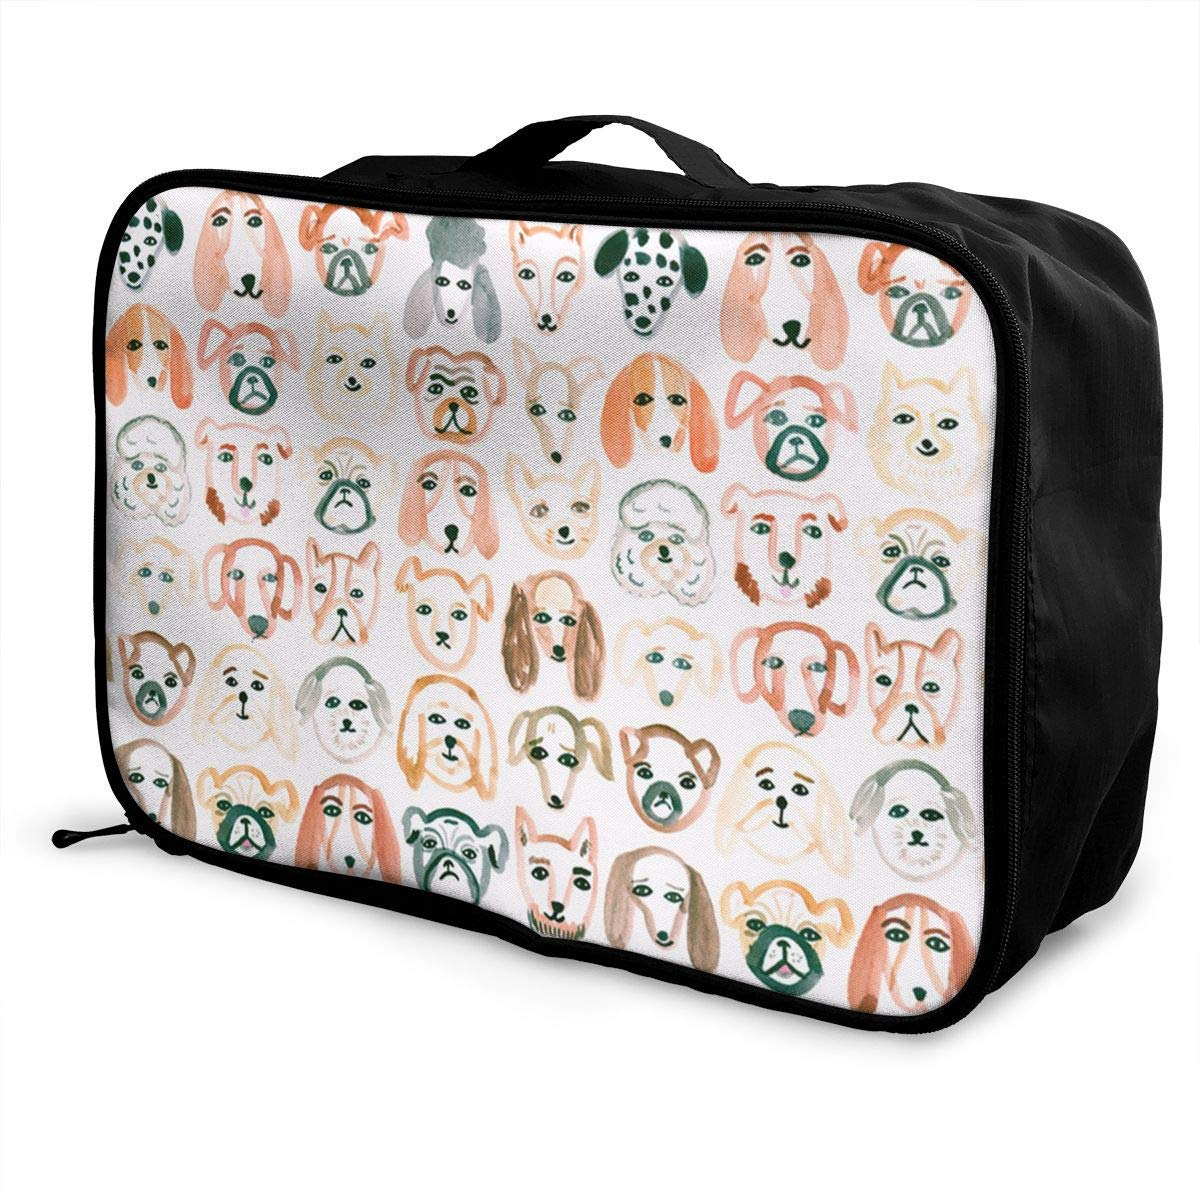 Portable Luggage Duffel Bag Dogs Of All Shapes Travel Bags Carry-on In Trolley Handle